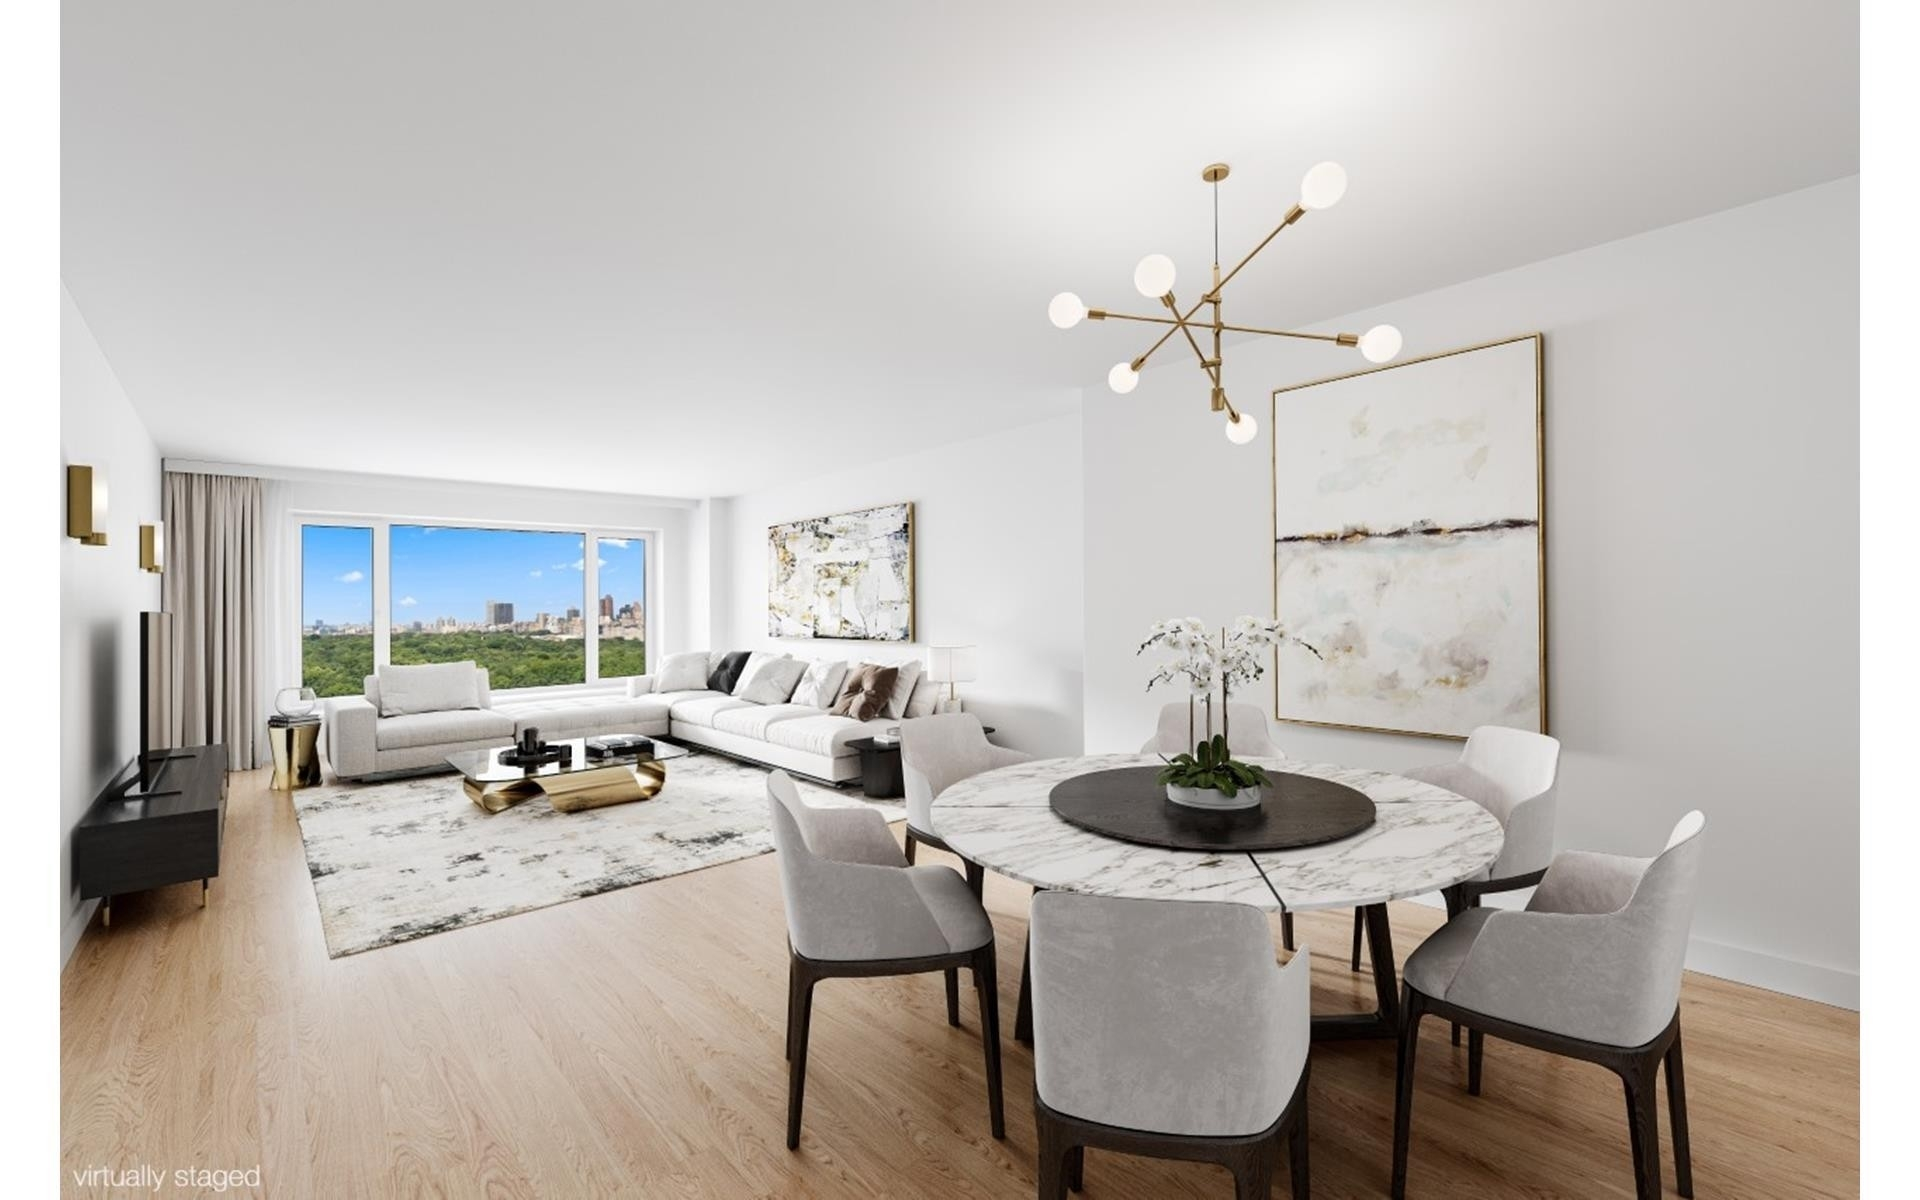 Co-op Properties for Sale at 200 CENTRAL PARK S, 24B Central Park South, New York, NY 10019